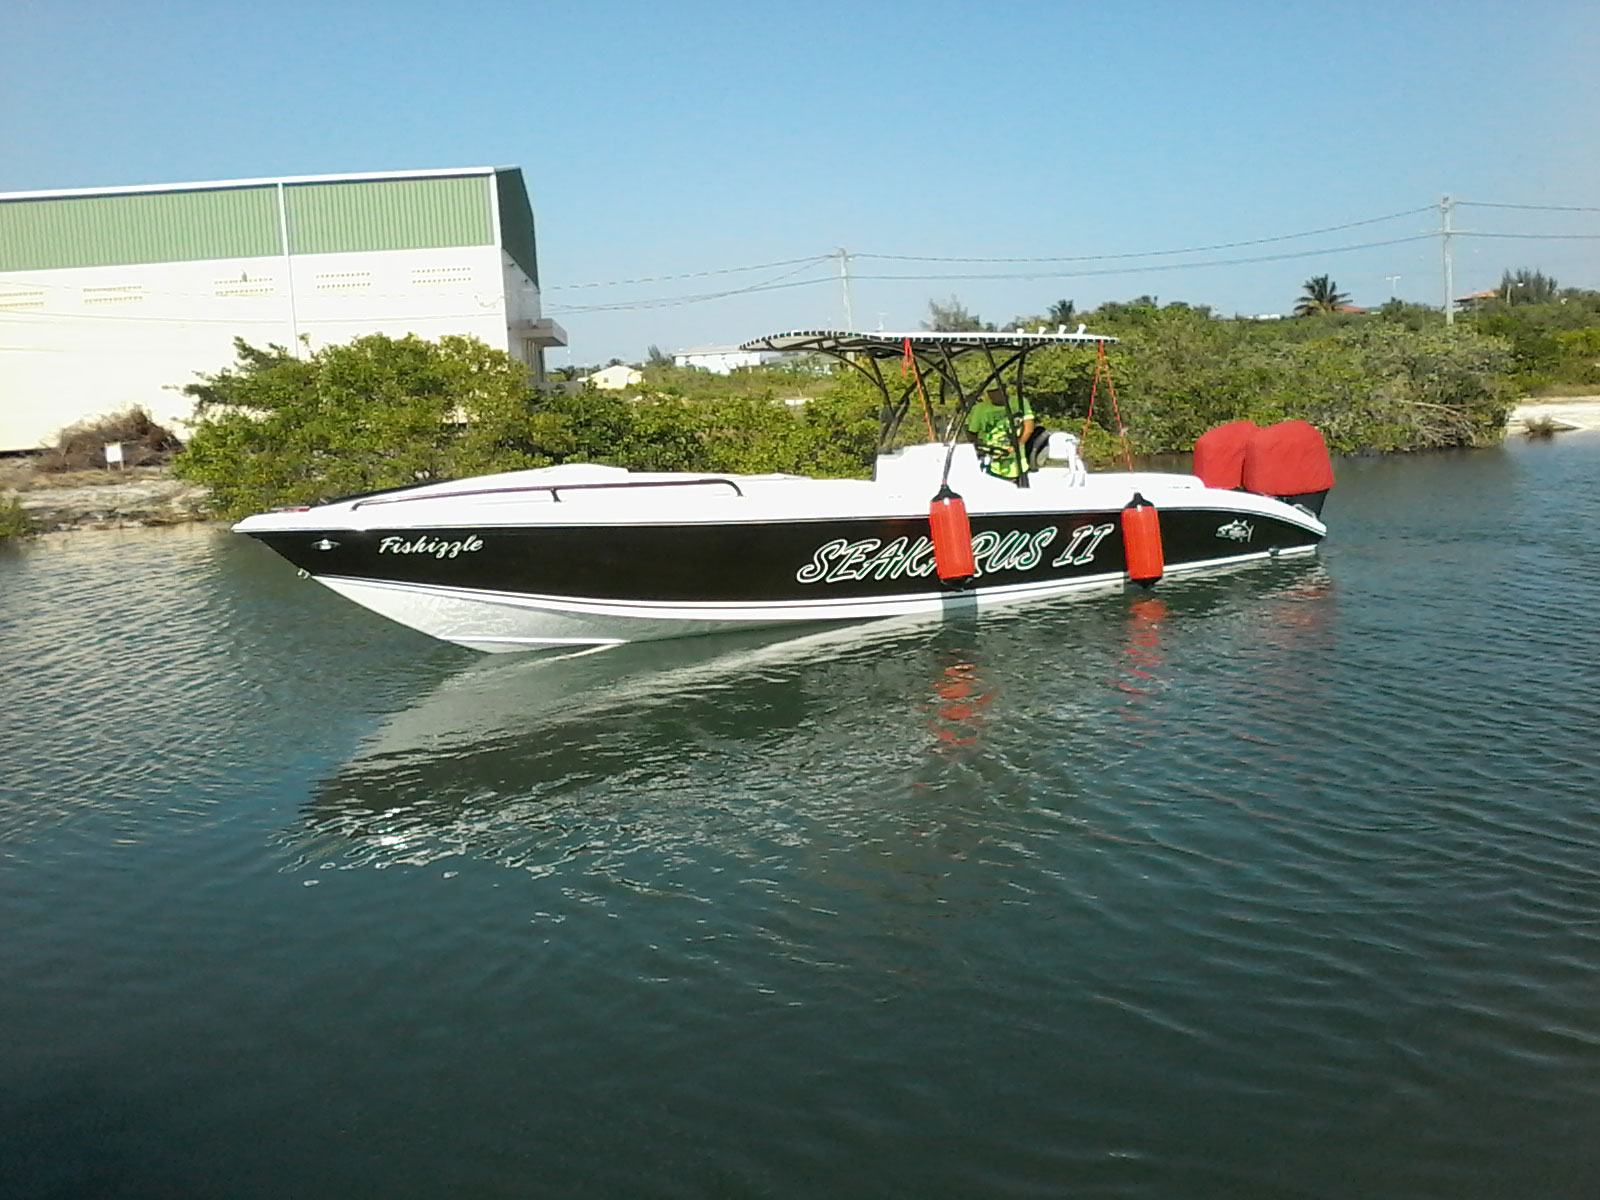 Congrats to Manuel Del Valle on his new Wahoo 30 Boat